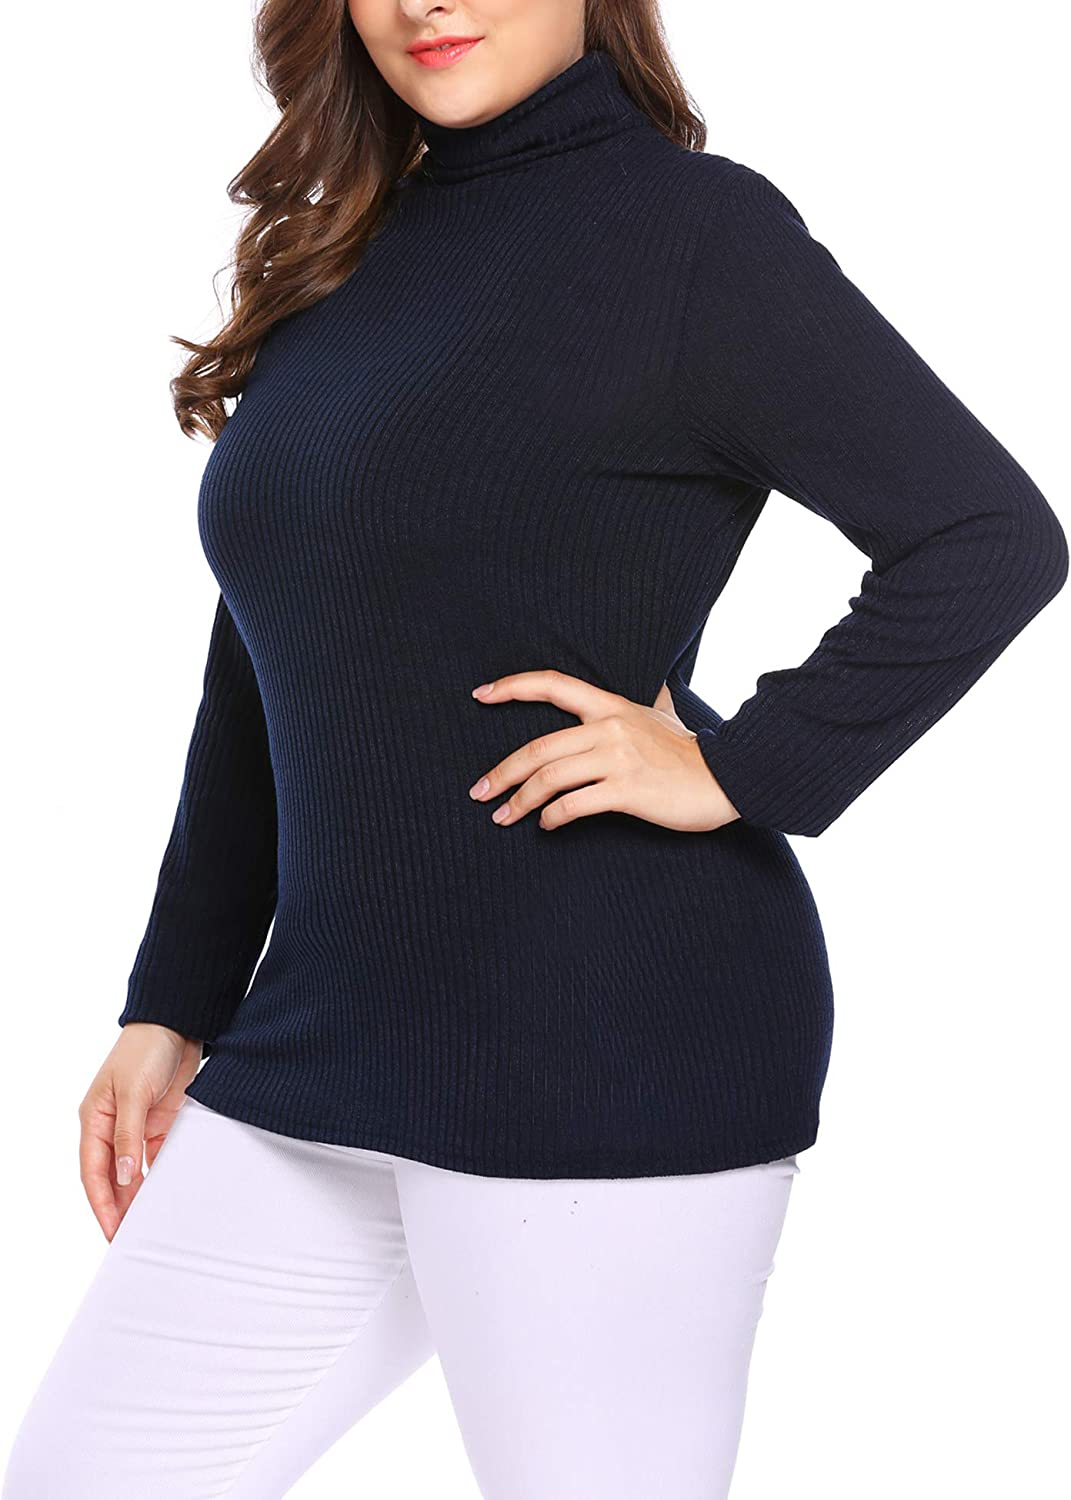 INVOLAND Womens Plus Size Turtleneck Lightweight Long Sleeve Top Rib Knit Pullover Sweater